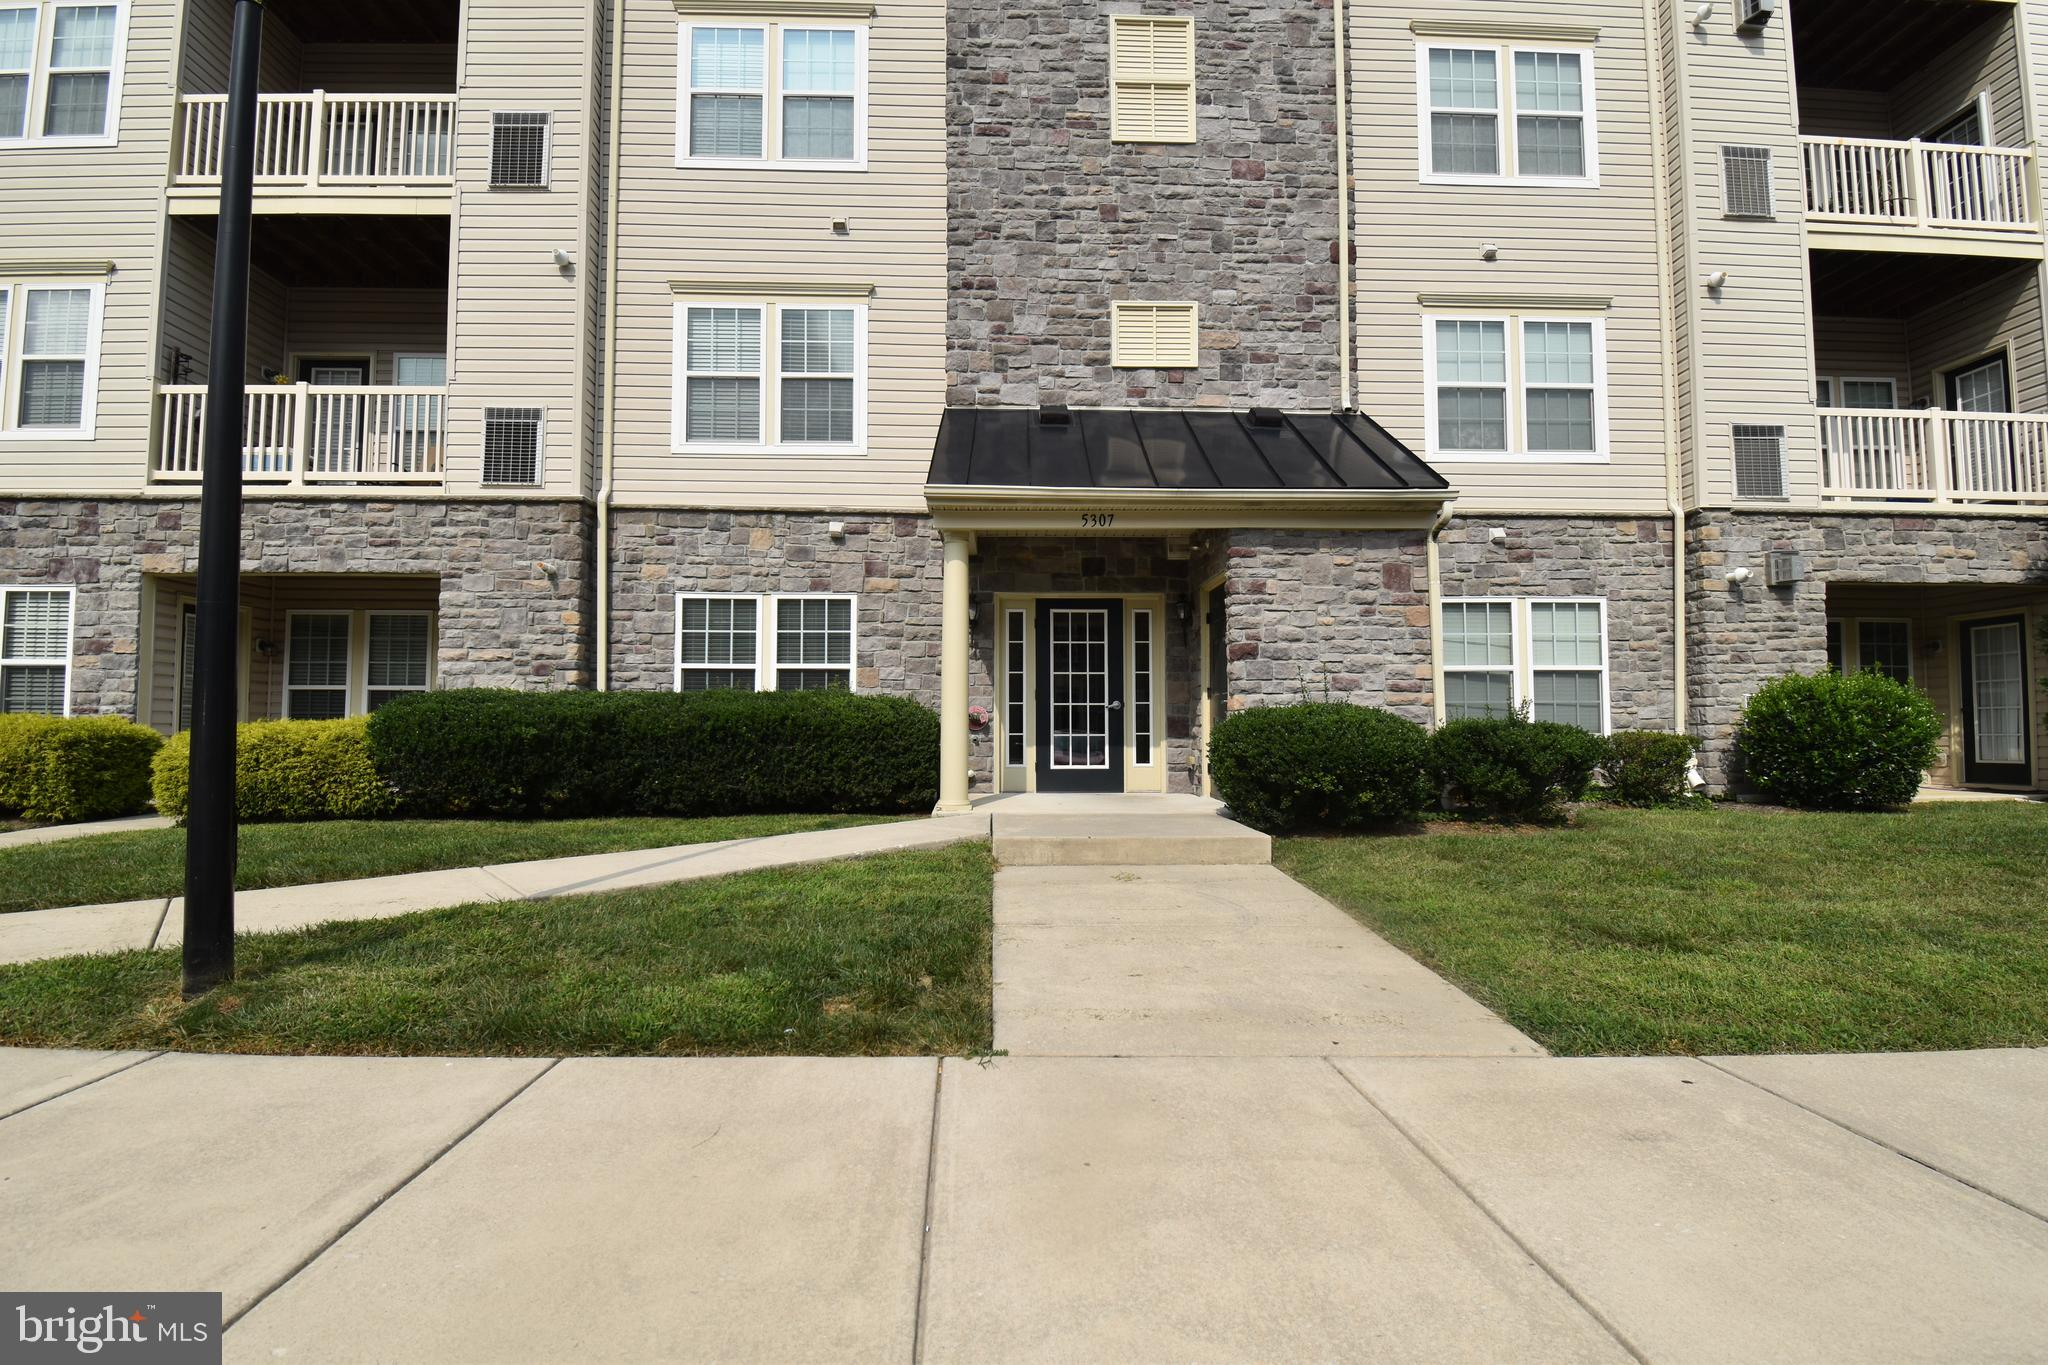 Back on the Market, Buyer's Financing Fell-Thru*This Large Open Floor Plan Condo is Tucked Away in the Wyndholme Woods Community* Approx. 5 Minutes from Route 695. Take an Elevator Ride to your Spacious and Luxurious Third Floor Condo* It Features  a Grand Entry Foyer to your Living Room and Dining Area, Adjoined to your Walk Through kitchen with 42' Oak Cabinets, Breakfast Bar, all Stainless Steel Appliances,Laundry and Pantry*Large Master Suite with Super Bath,Double Sink, Walk-in Closet Plus Wall Closet Both with Custom California  Closet Organizer*Large Second Bedroom That Adjoins Hall bath, Could be Second Master Bedroom*Plus an Open Office or Sun room with Connecting Rear Balcony.